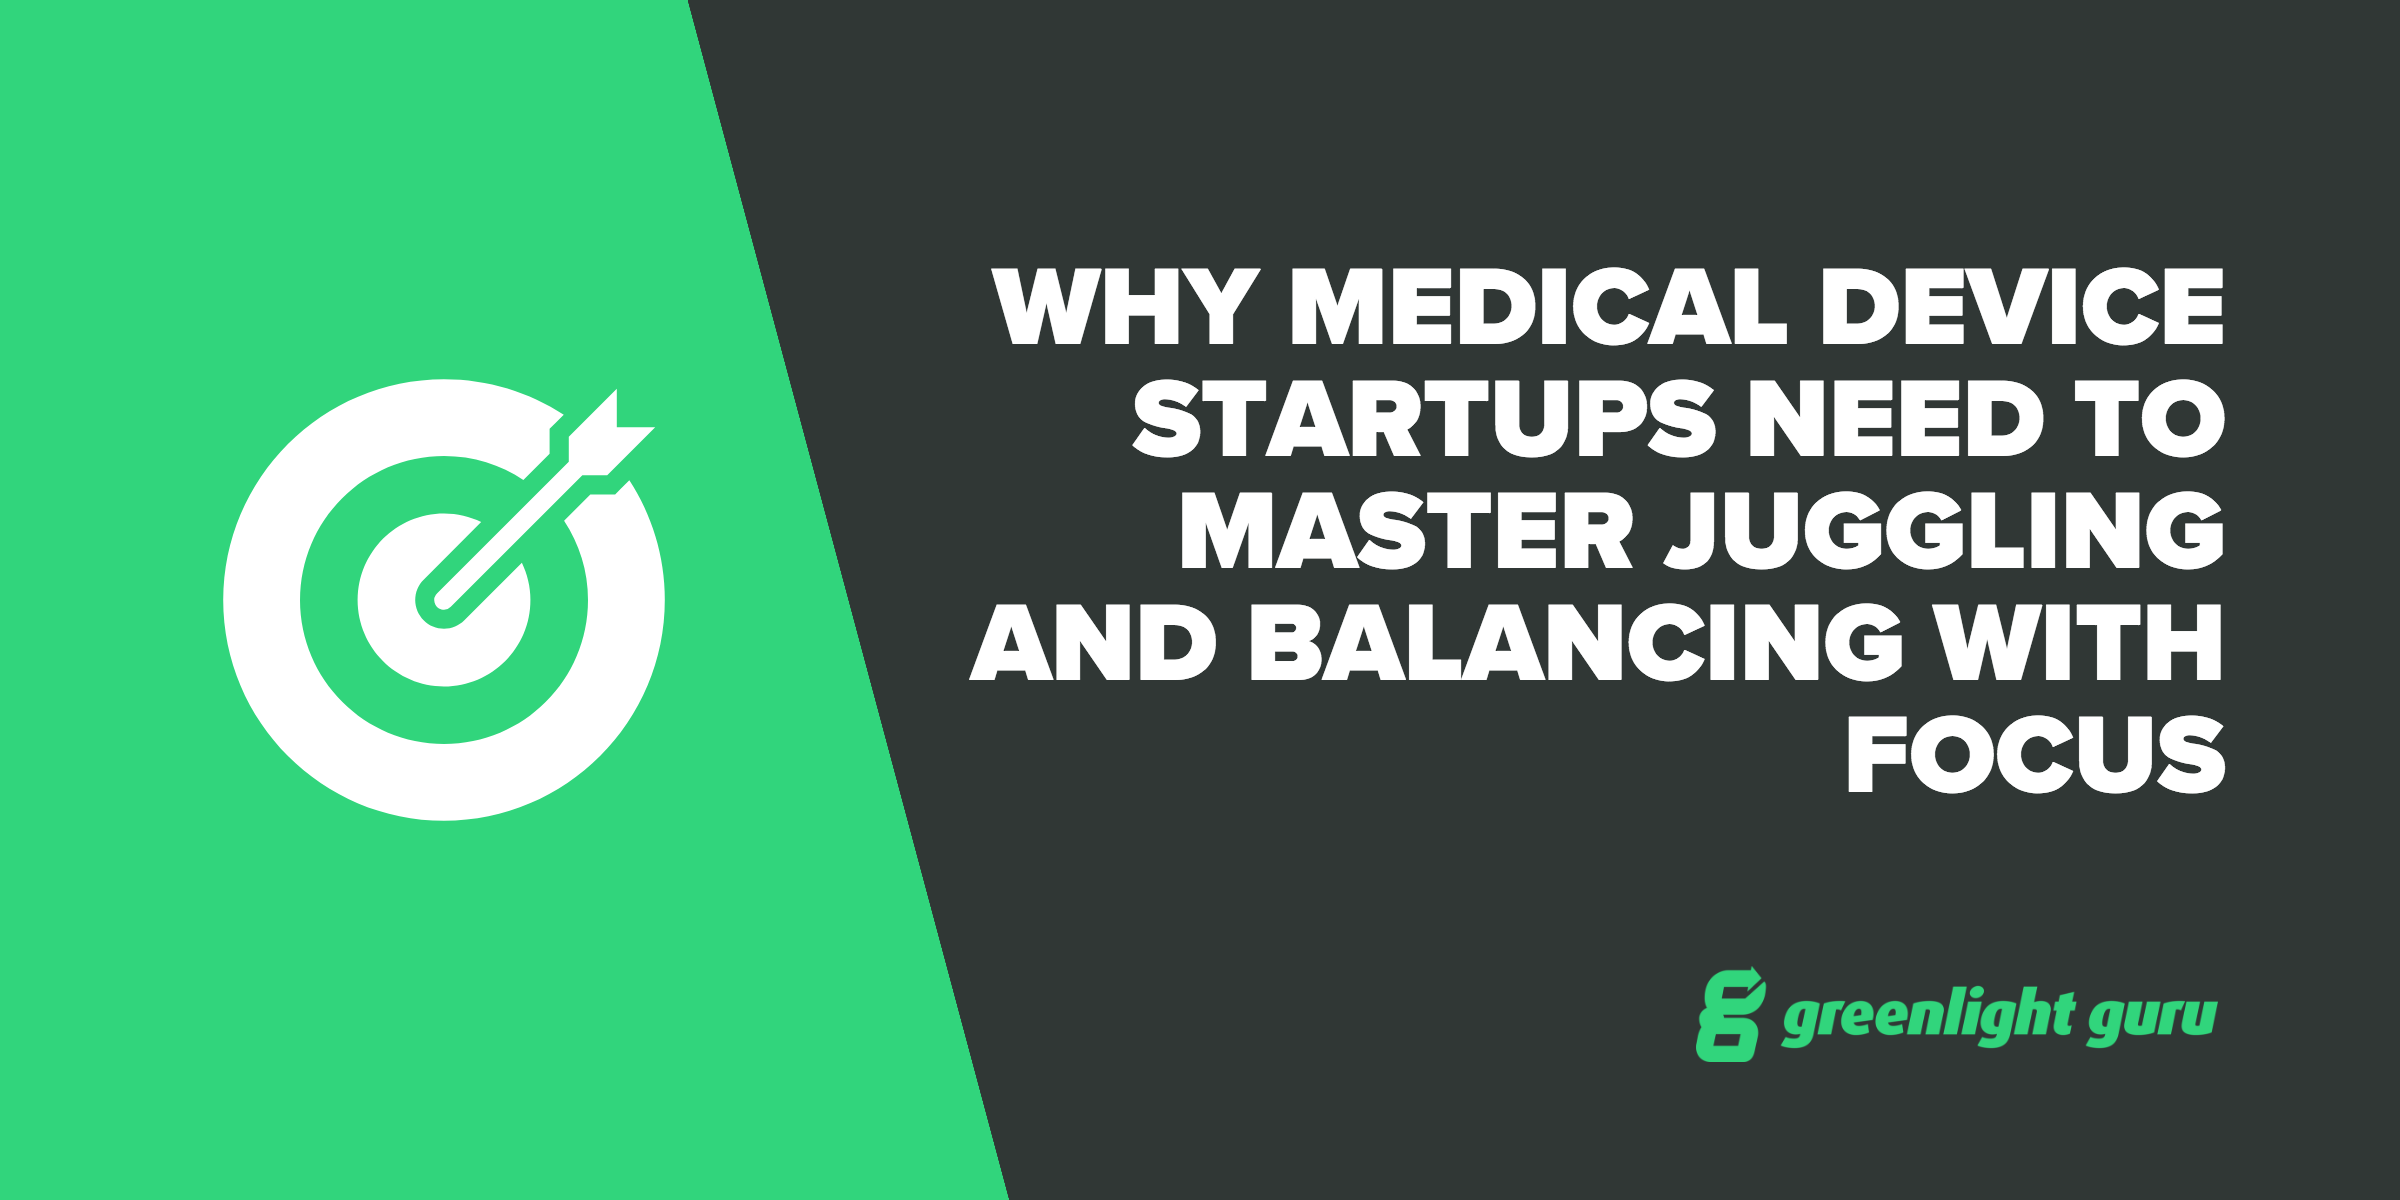 Why Medical Device Startups Need to Master Juggling and Balancing With Focus - Featured Image